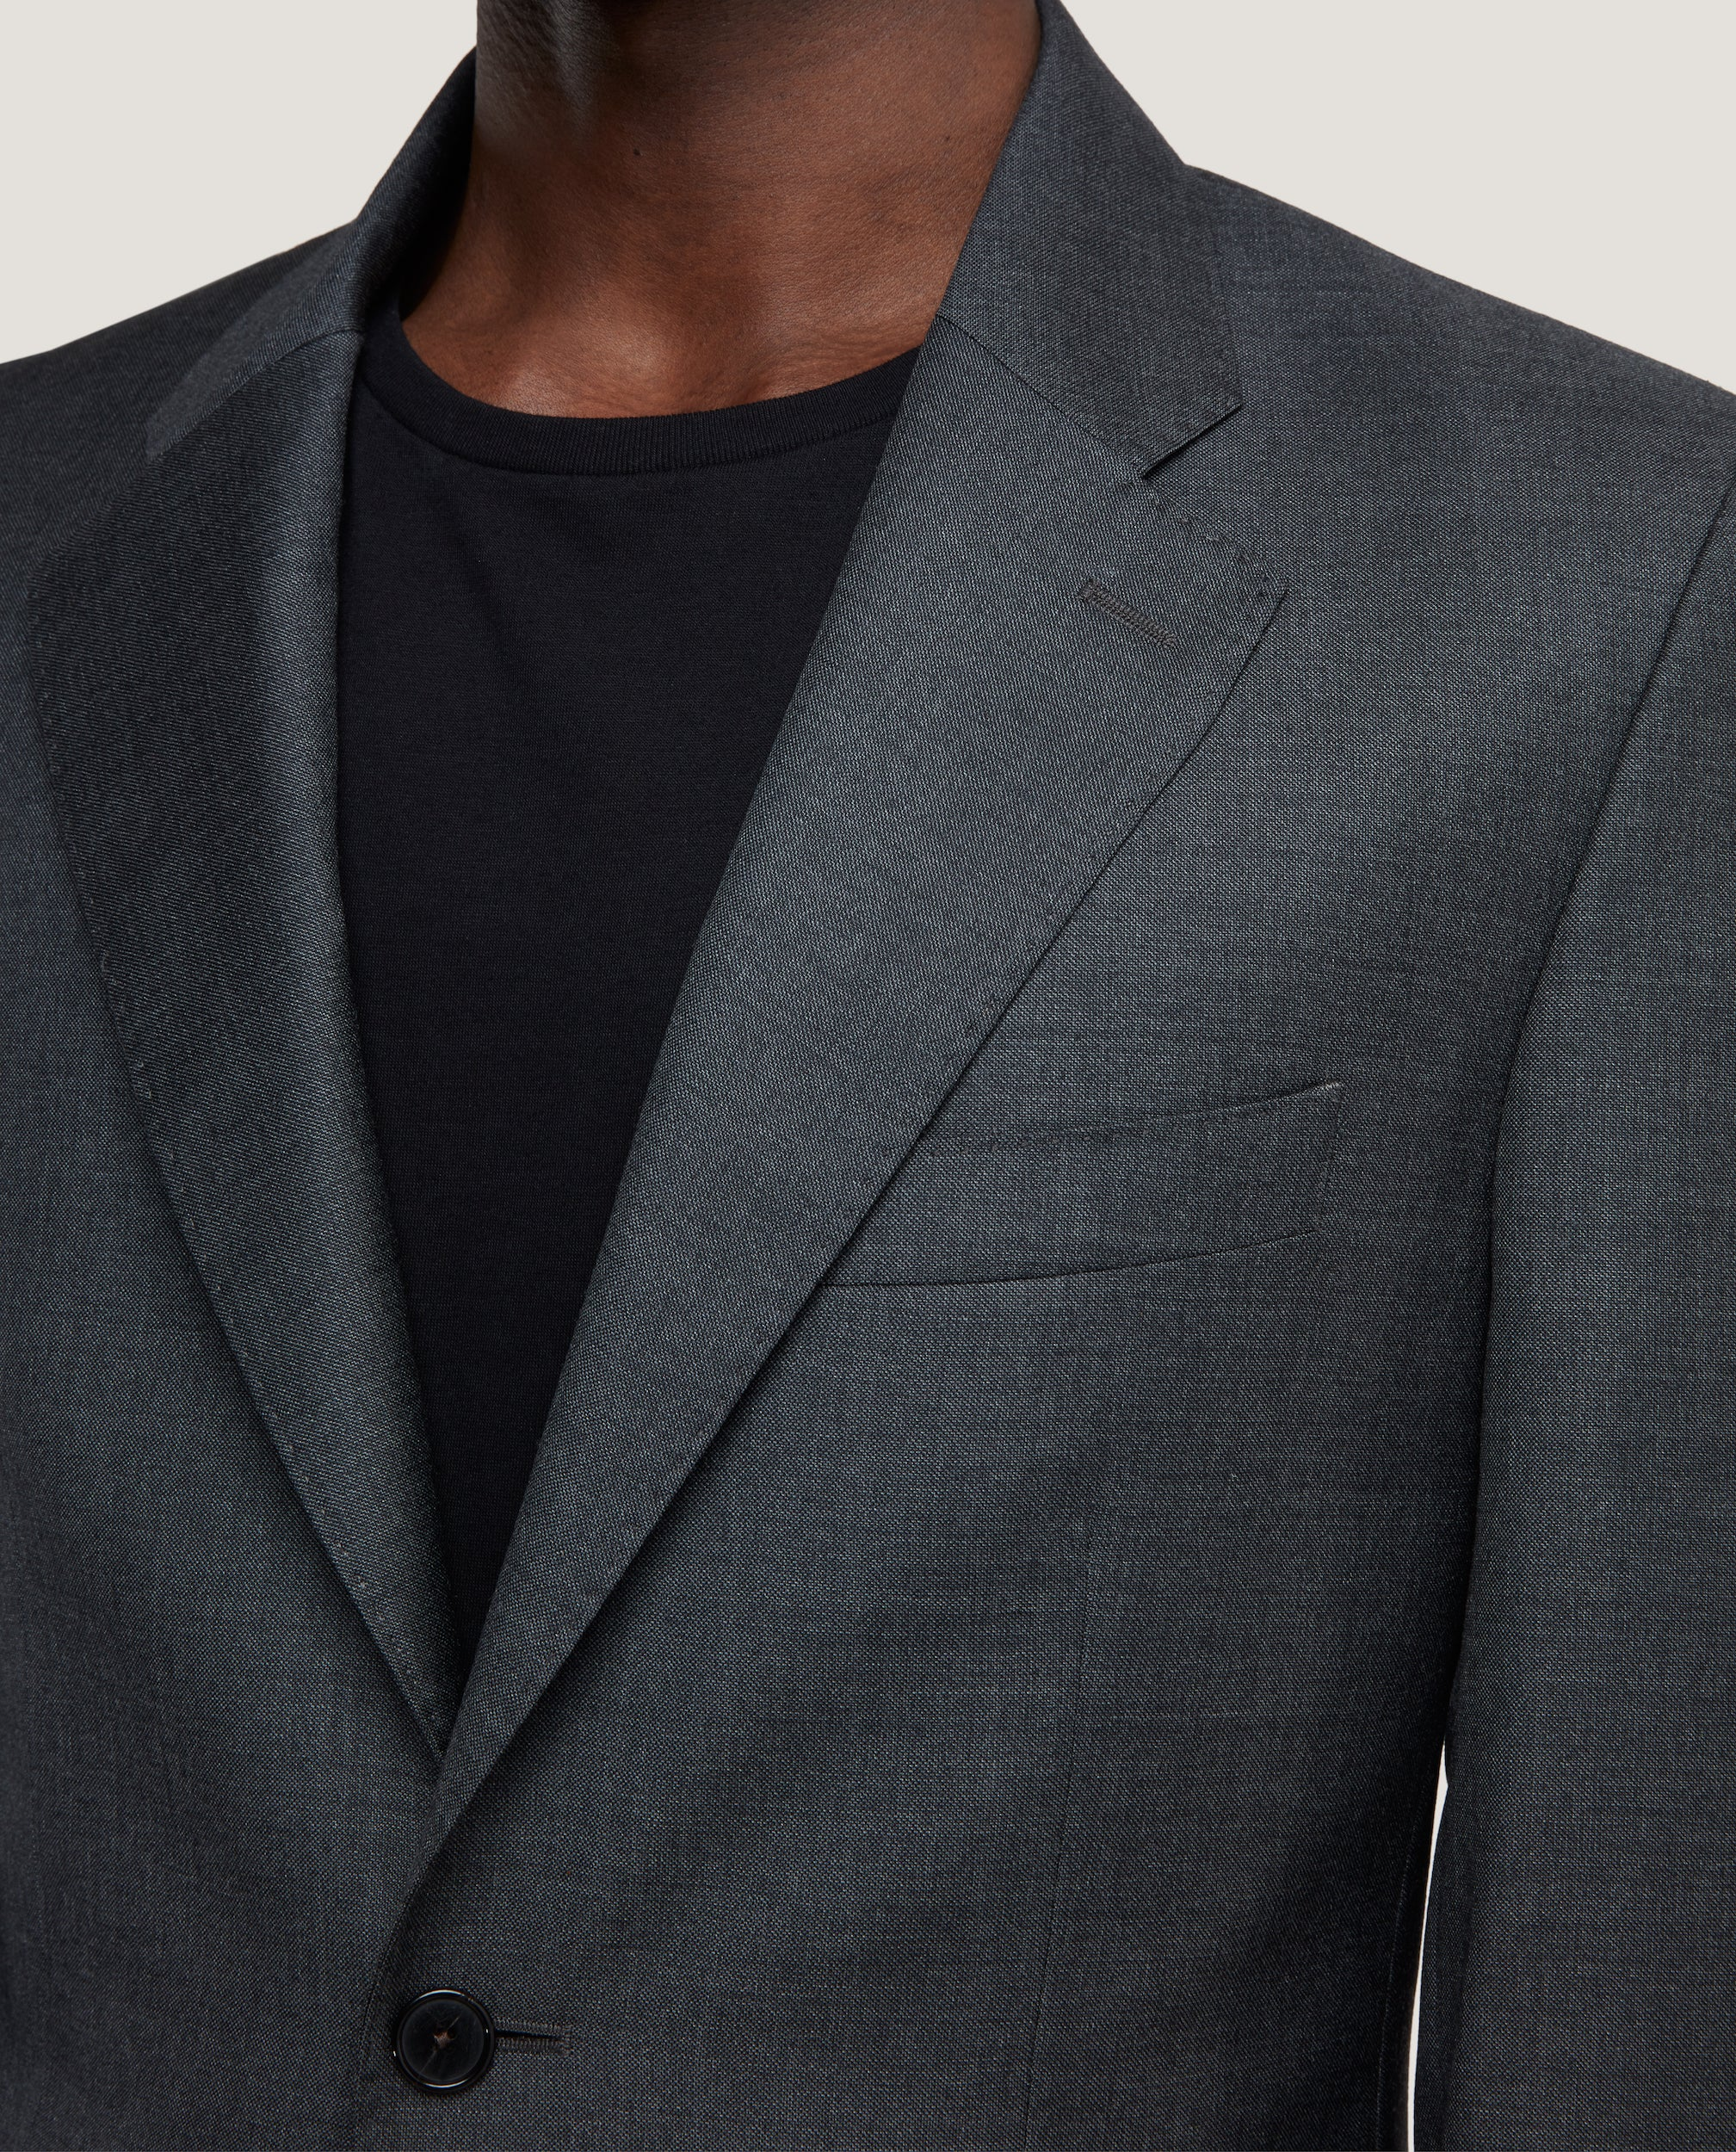 NESS Fully lined blazer | Wool-mohair blend